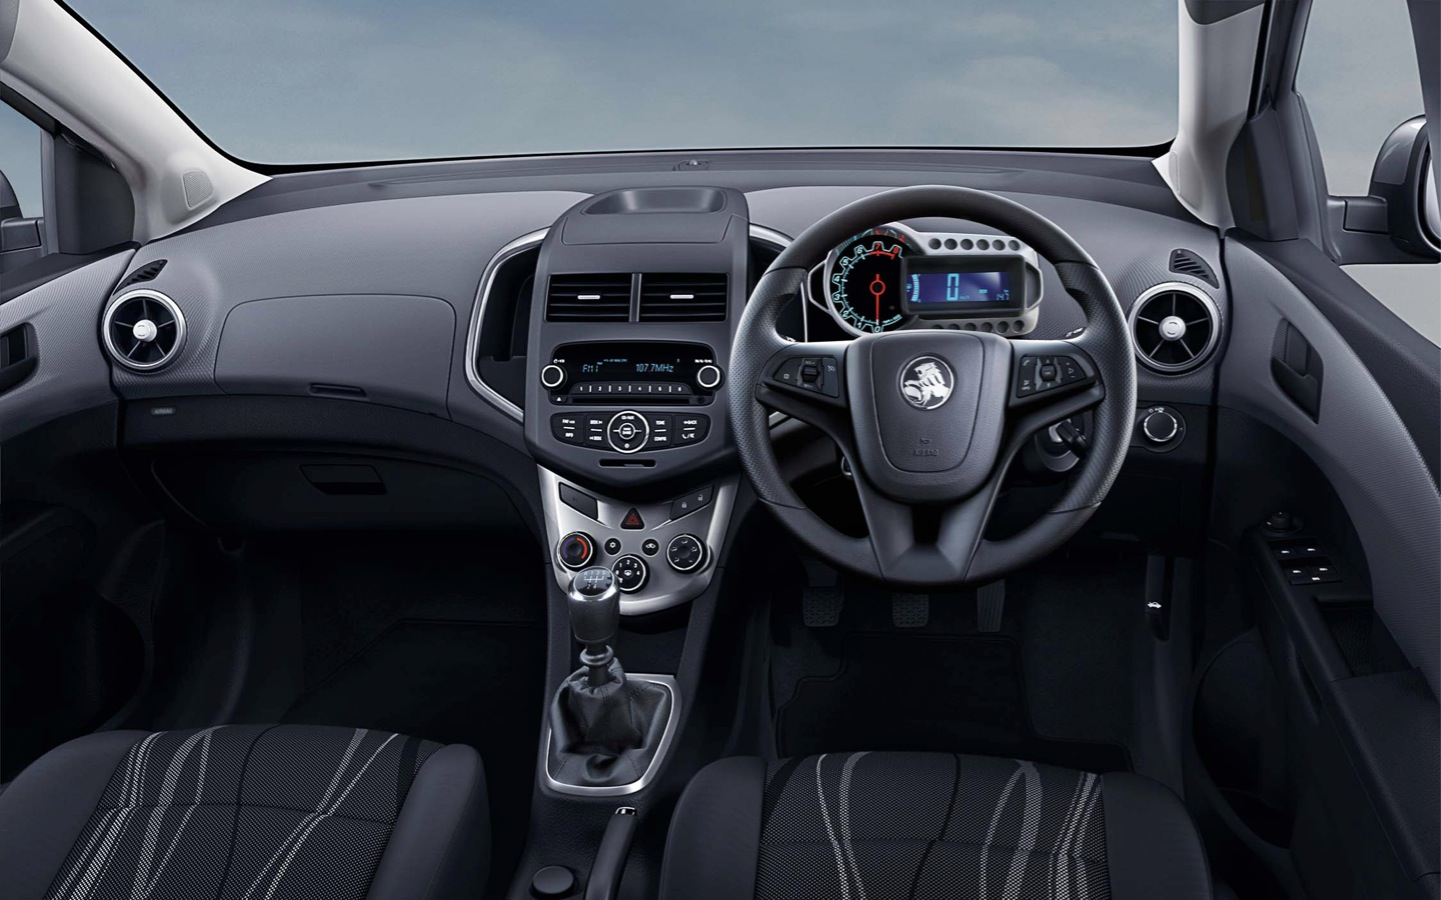 2016 Duramax Specs >> HOLDEN Barina Sedan specs & photos - 2012, 2013, 2014, 2015, 2016, 2017, 2018, 2019 - autoevolution